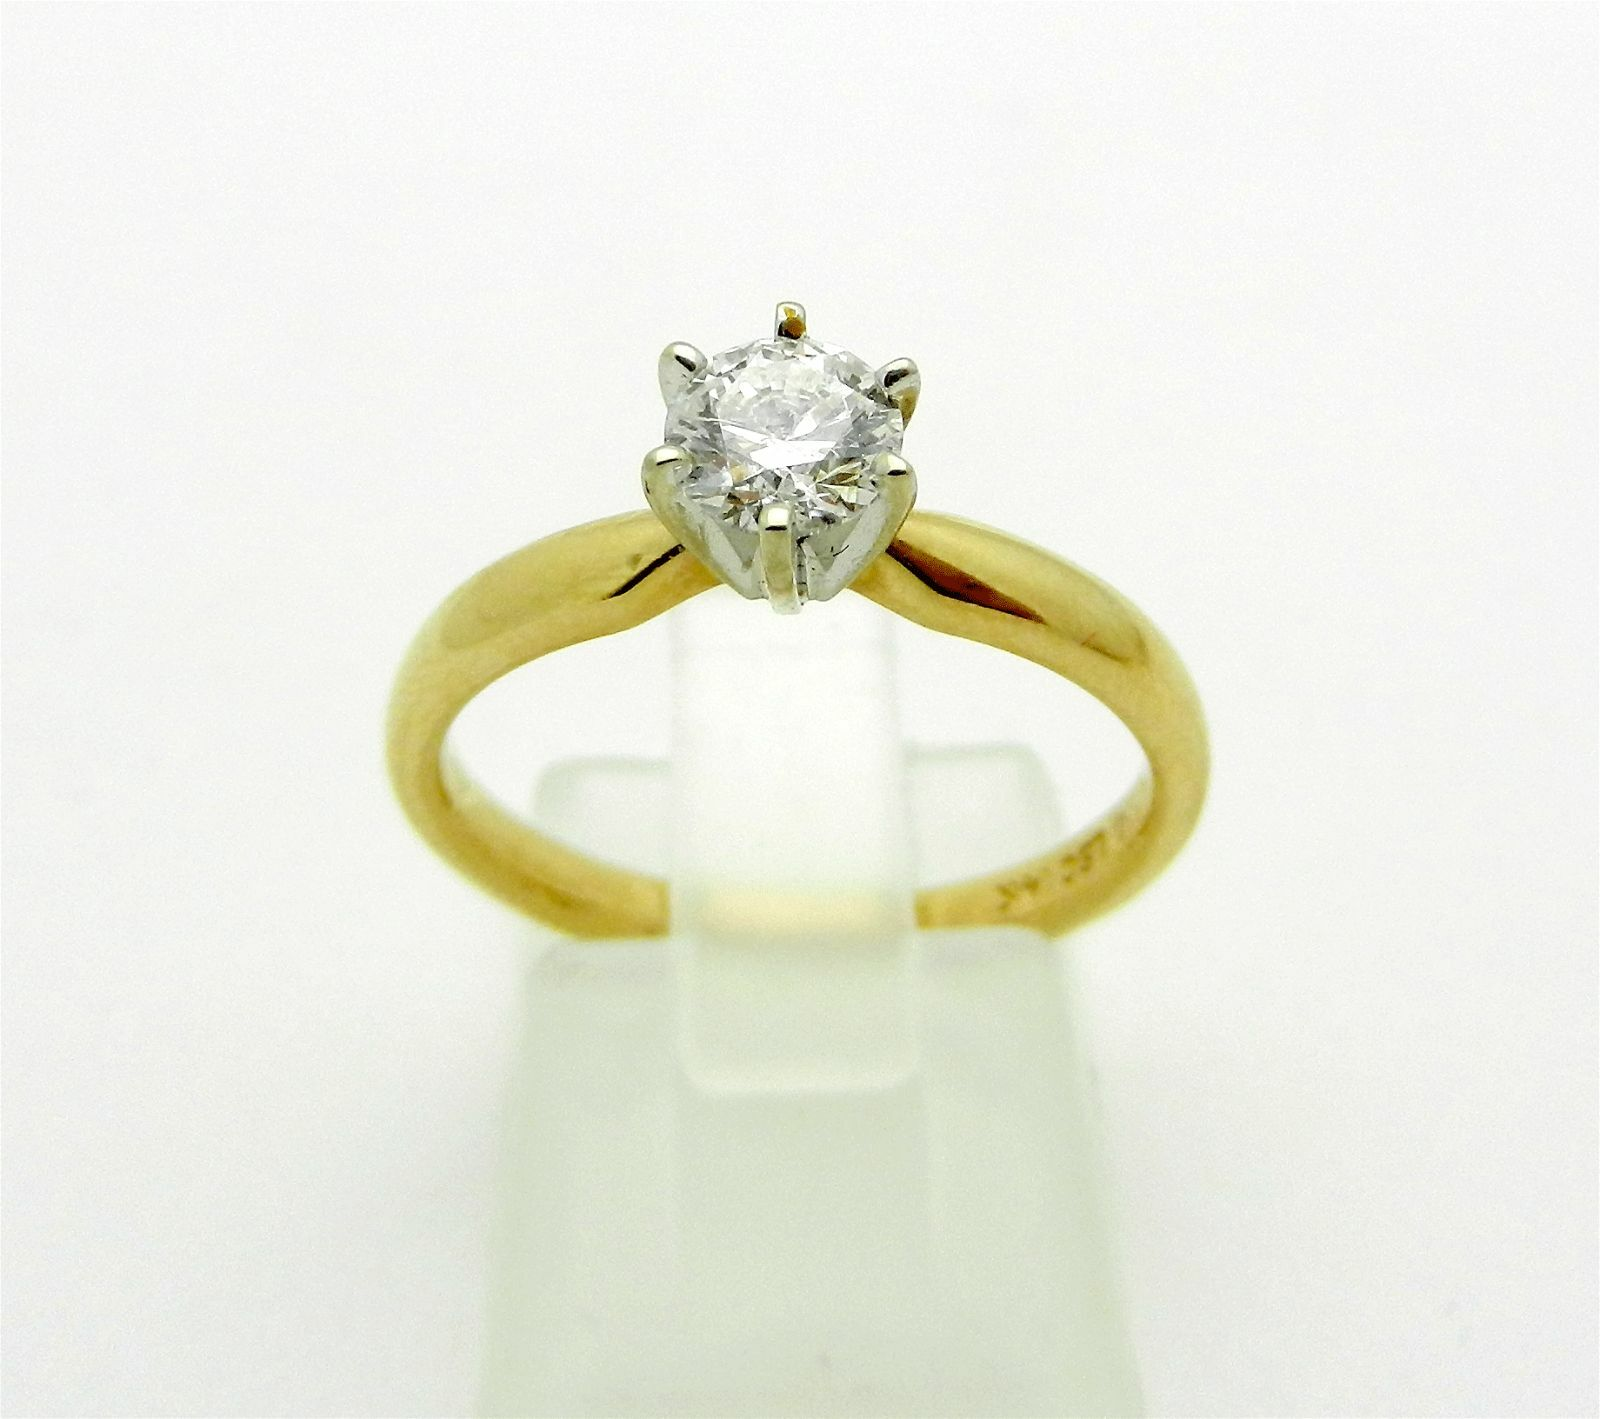 CLASSY 14K YELLOW Gold Solitaire F SI1 Diamond 1 2 0 50ct Engagement